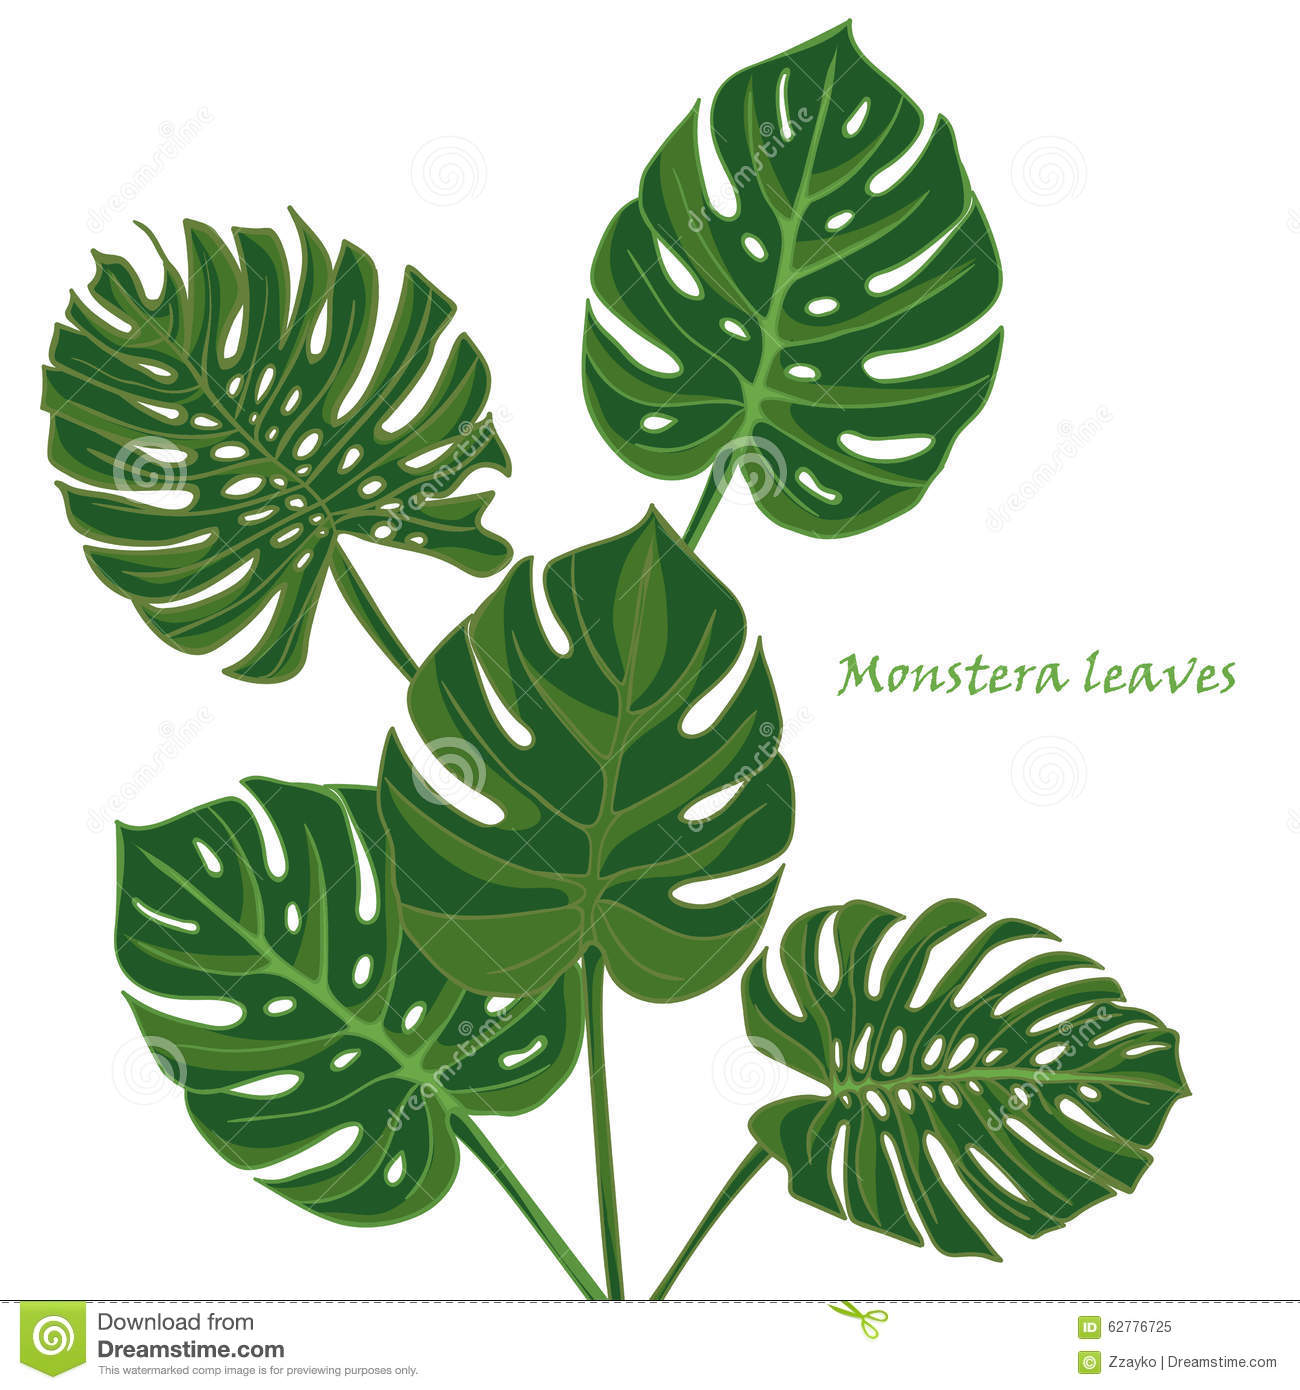 Monstera leaf clipart.